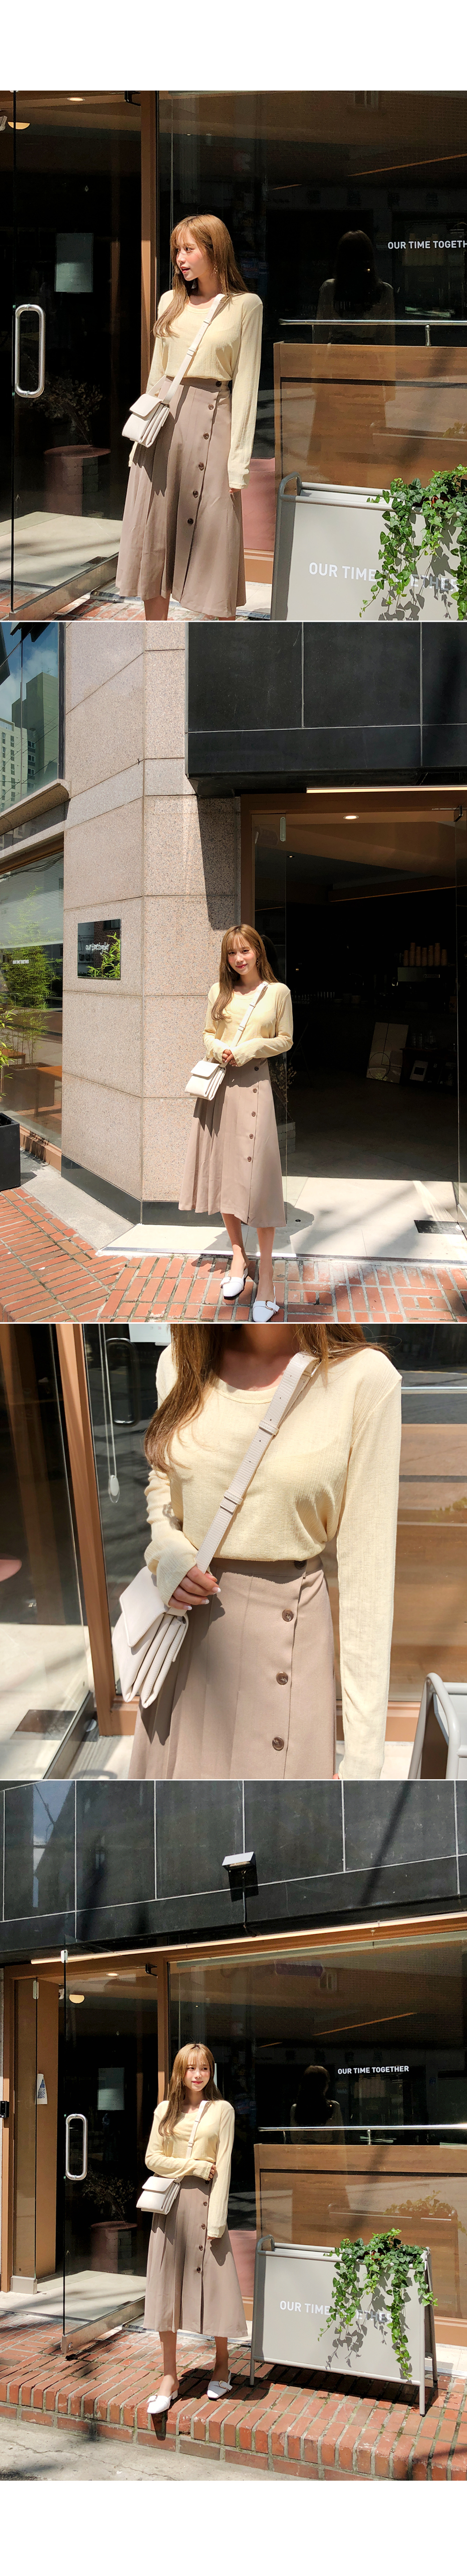 Comfortable round knit